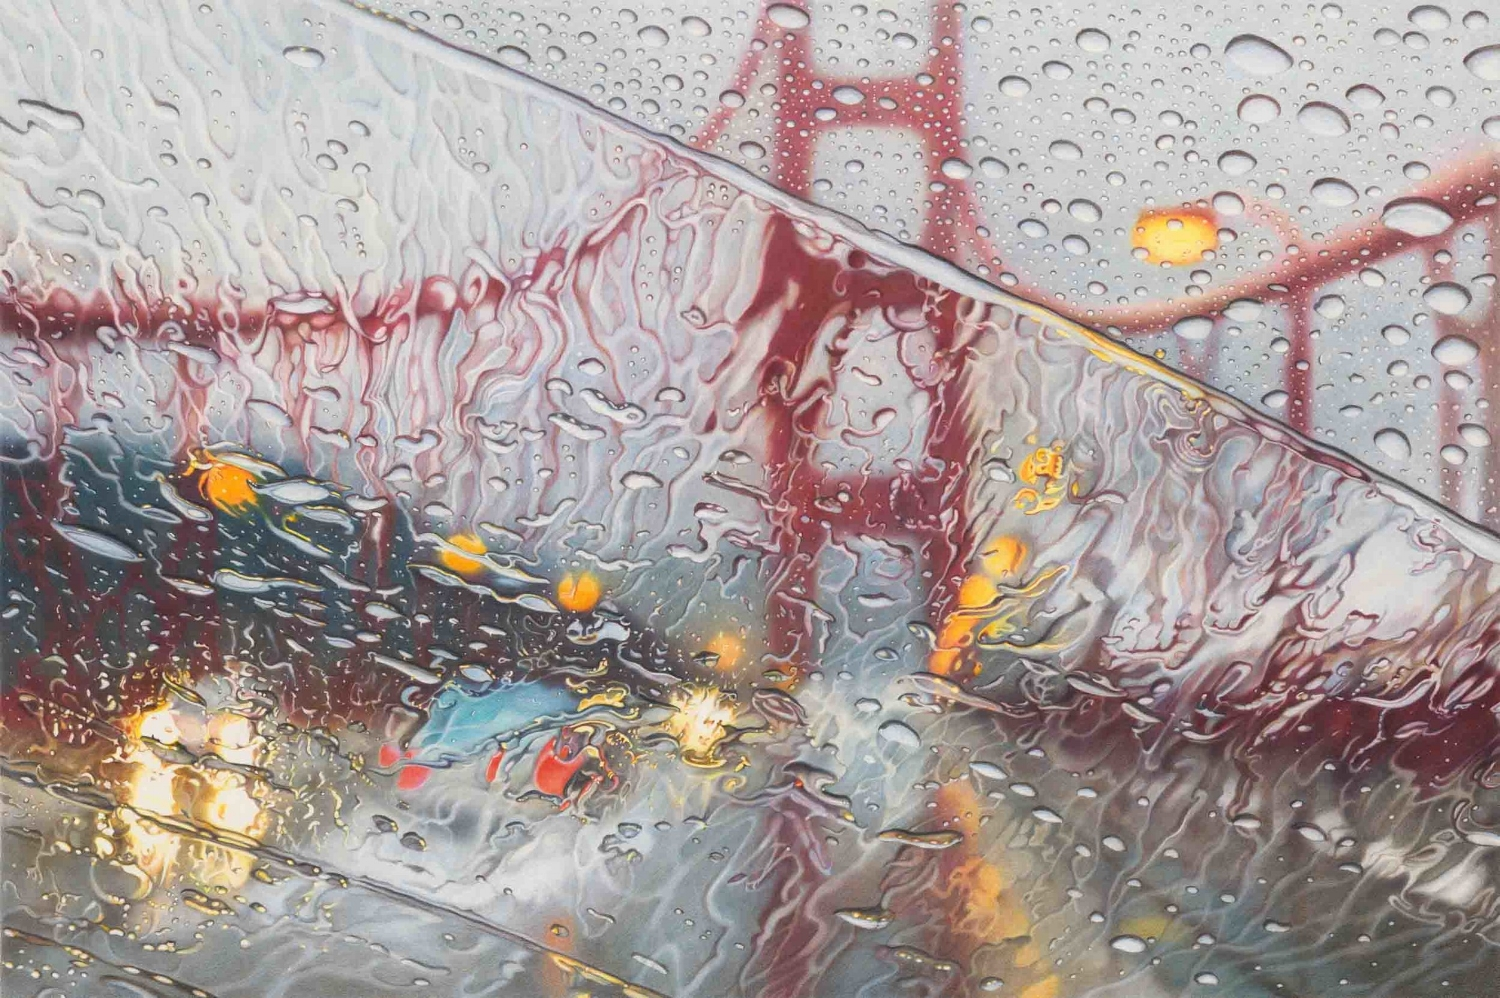 Golden Gate Bridge II, San Francisco, 2016